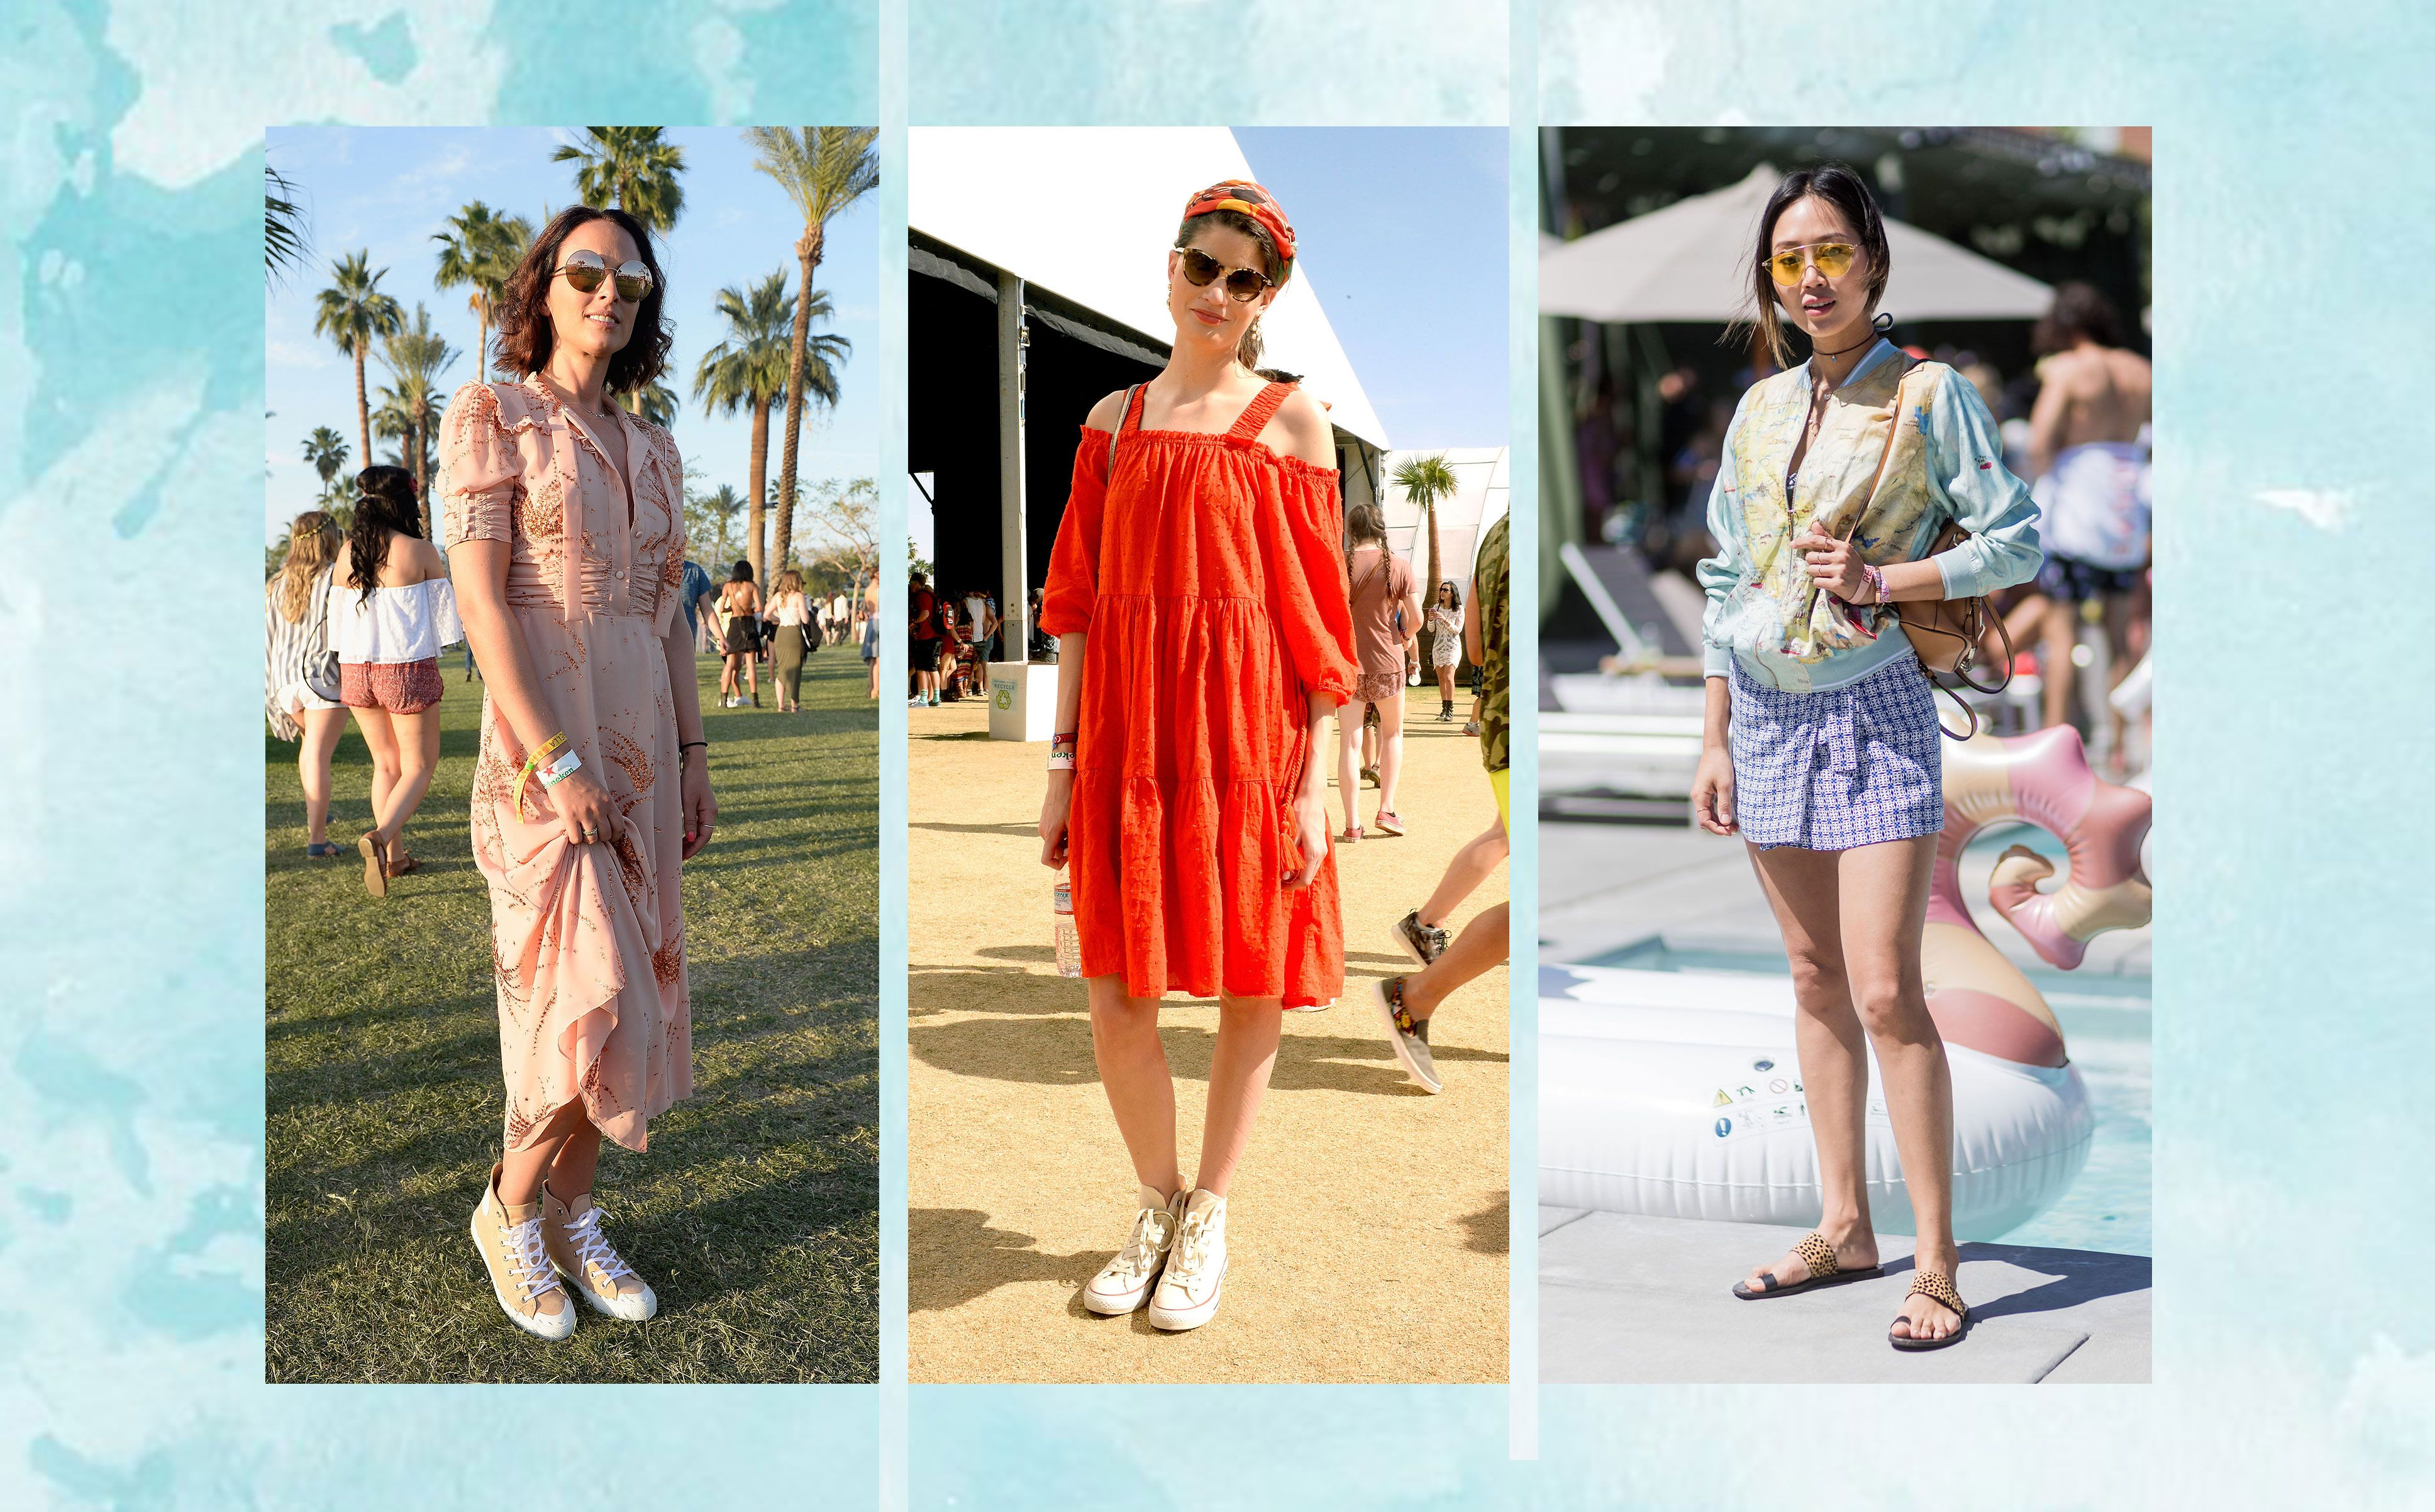 a91a55a606 6 Outfits To Help Up Your Festival Style Game